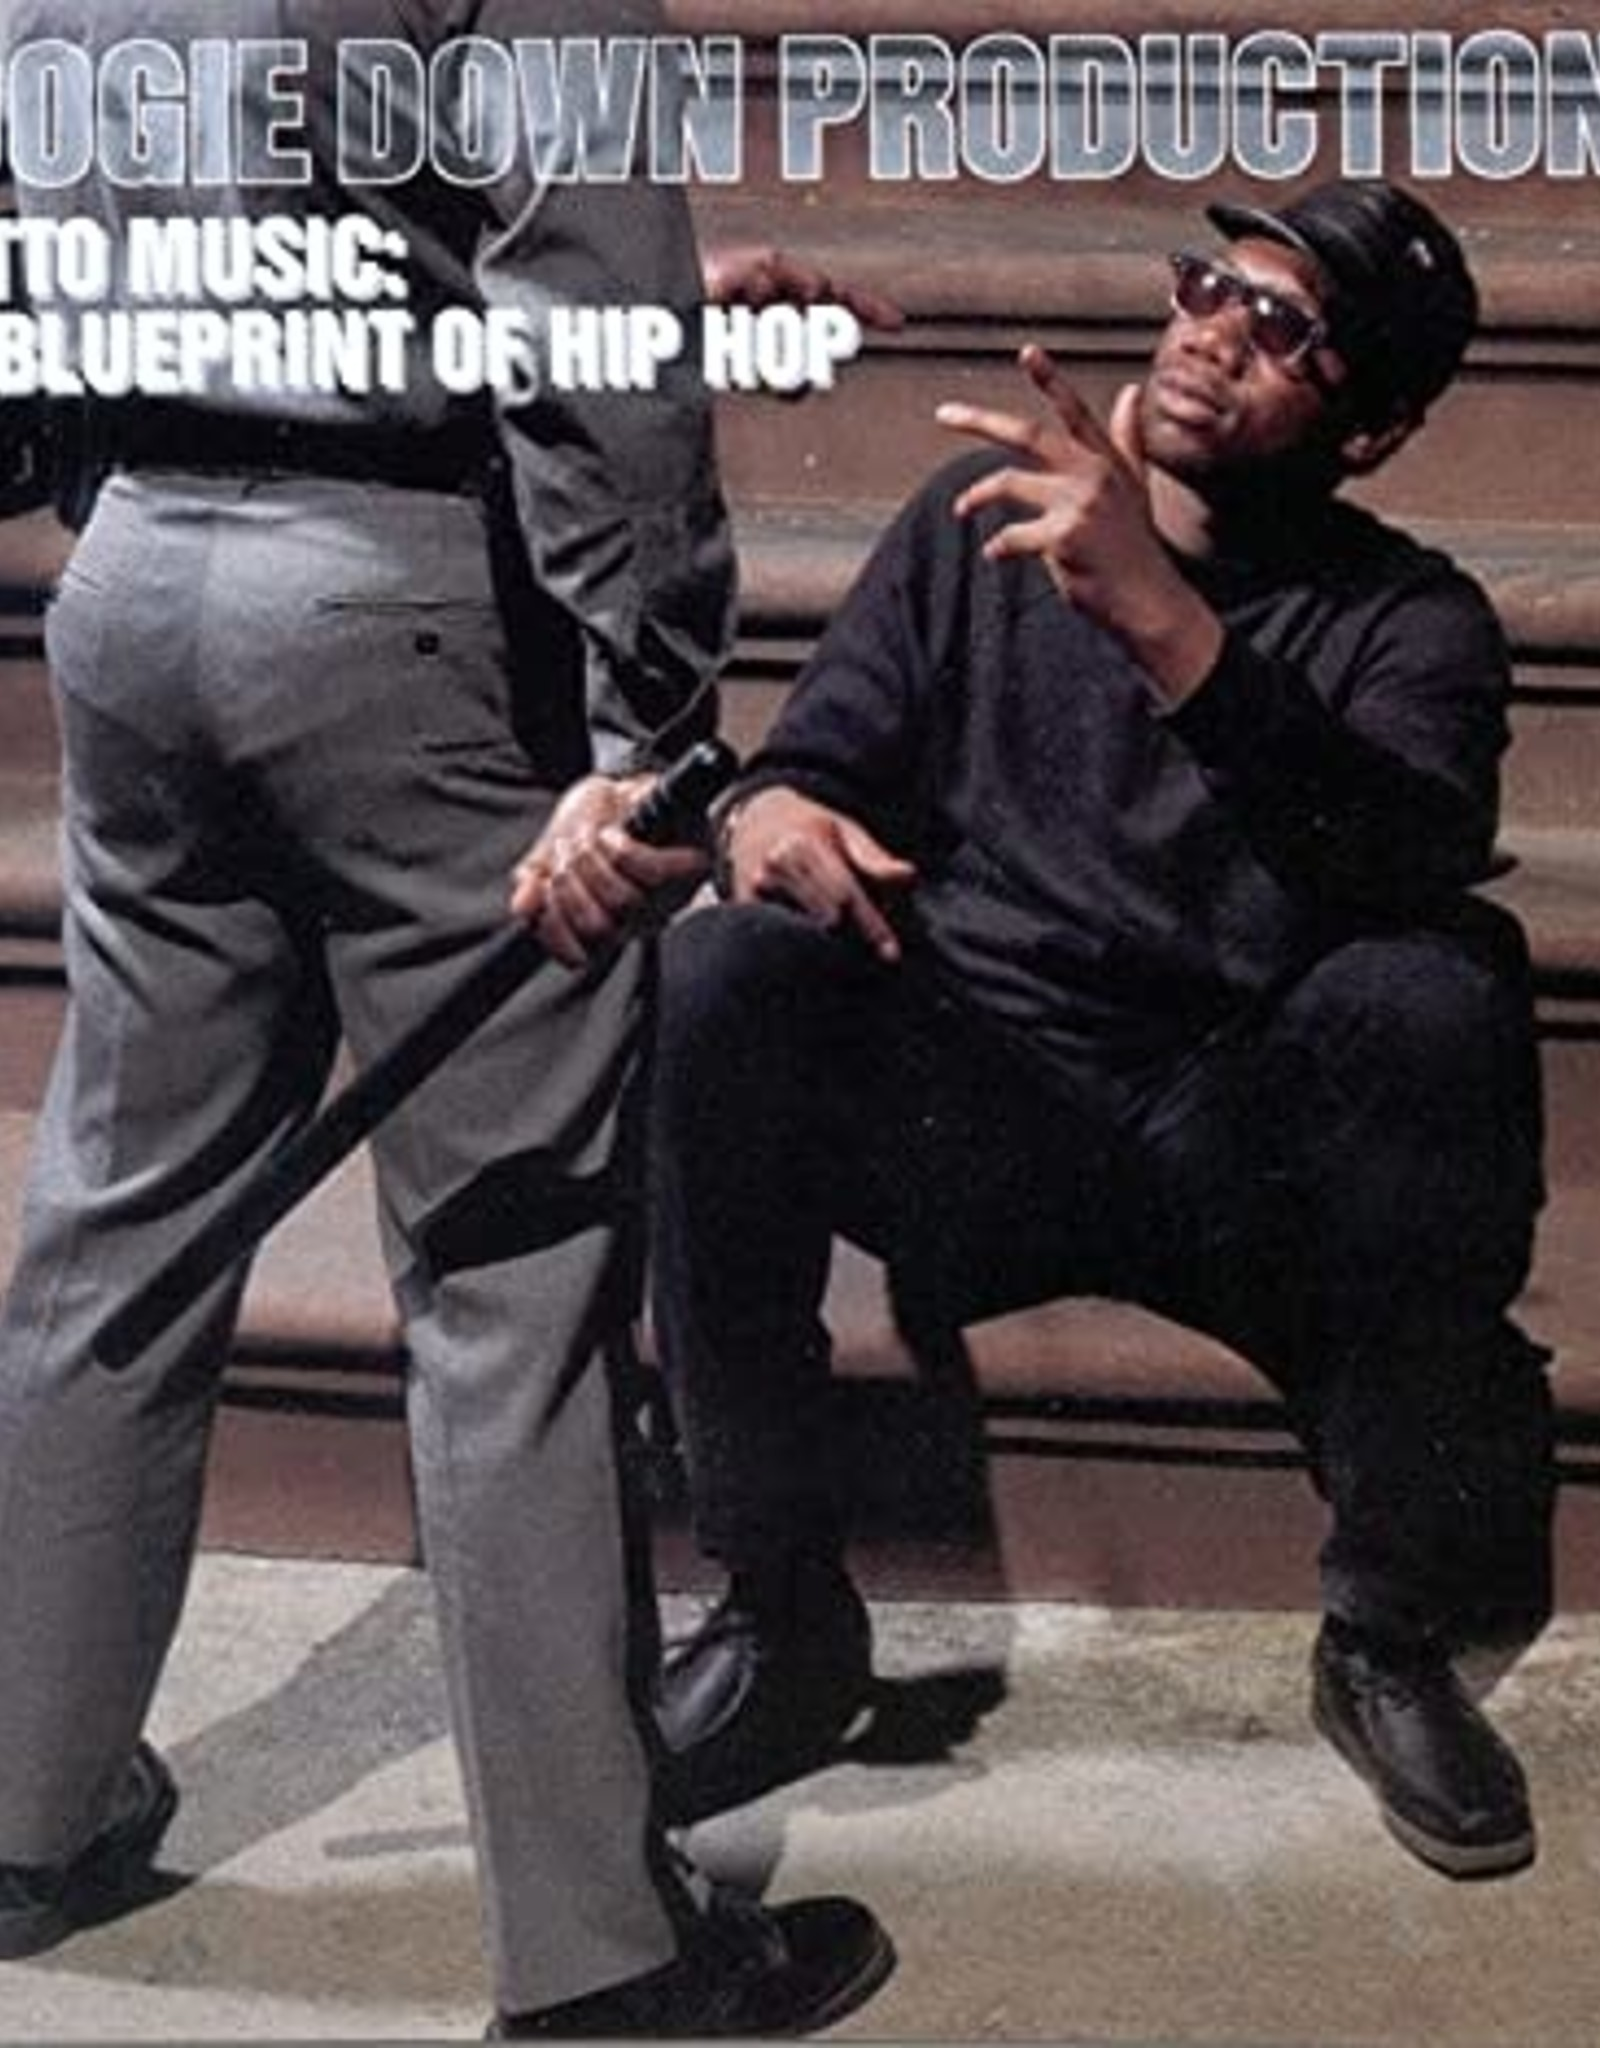 Boogie Down Productionsghetto Music:The Blueprint Of Hi -